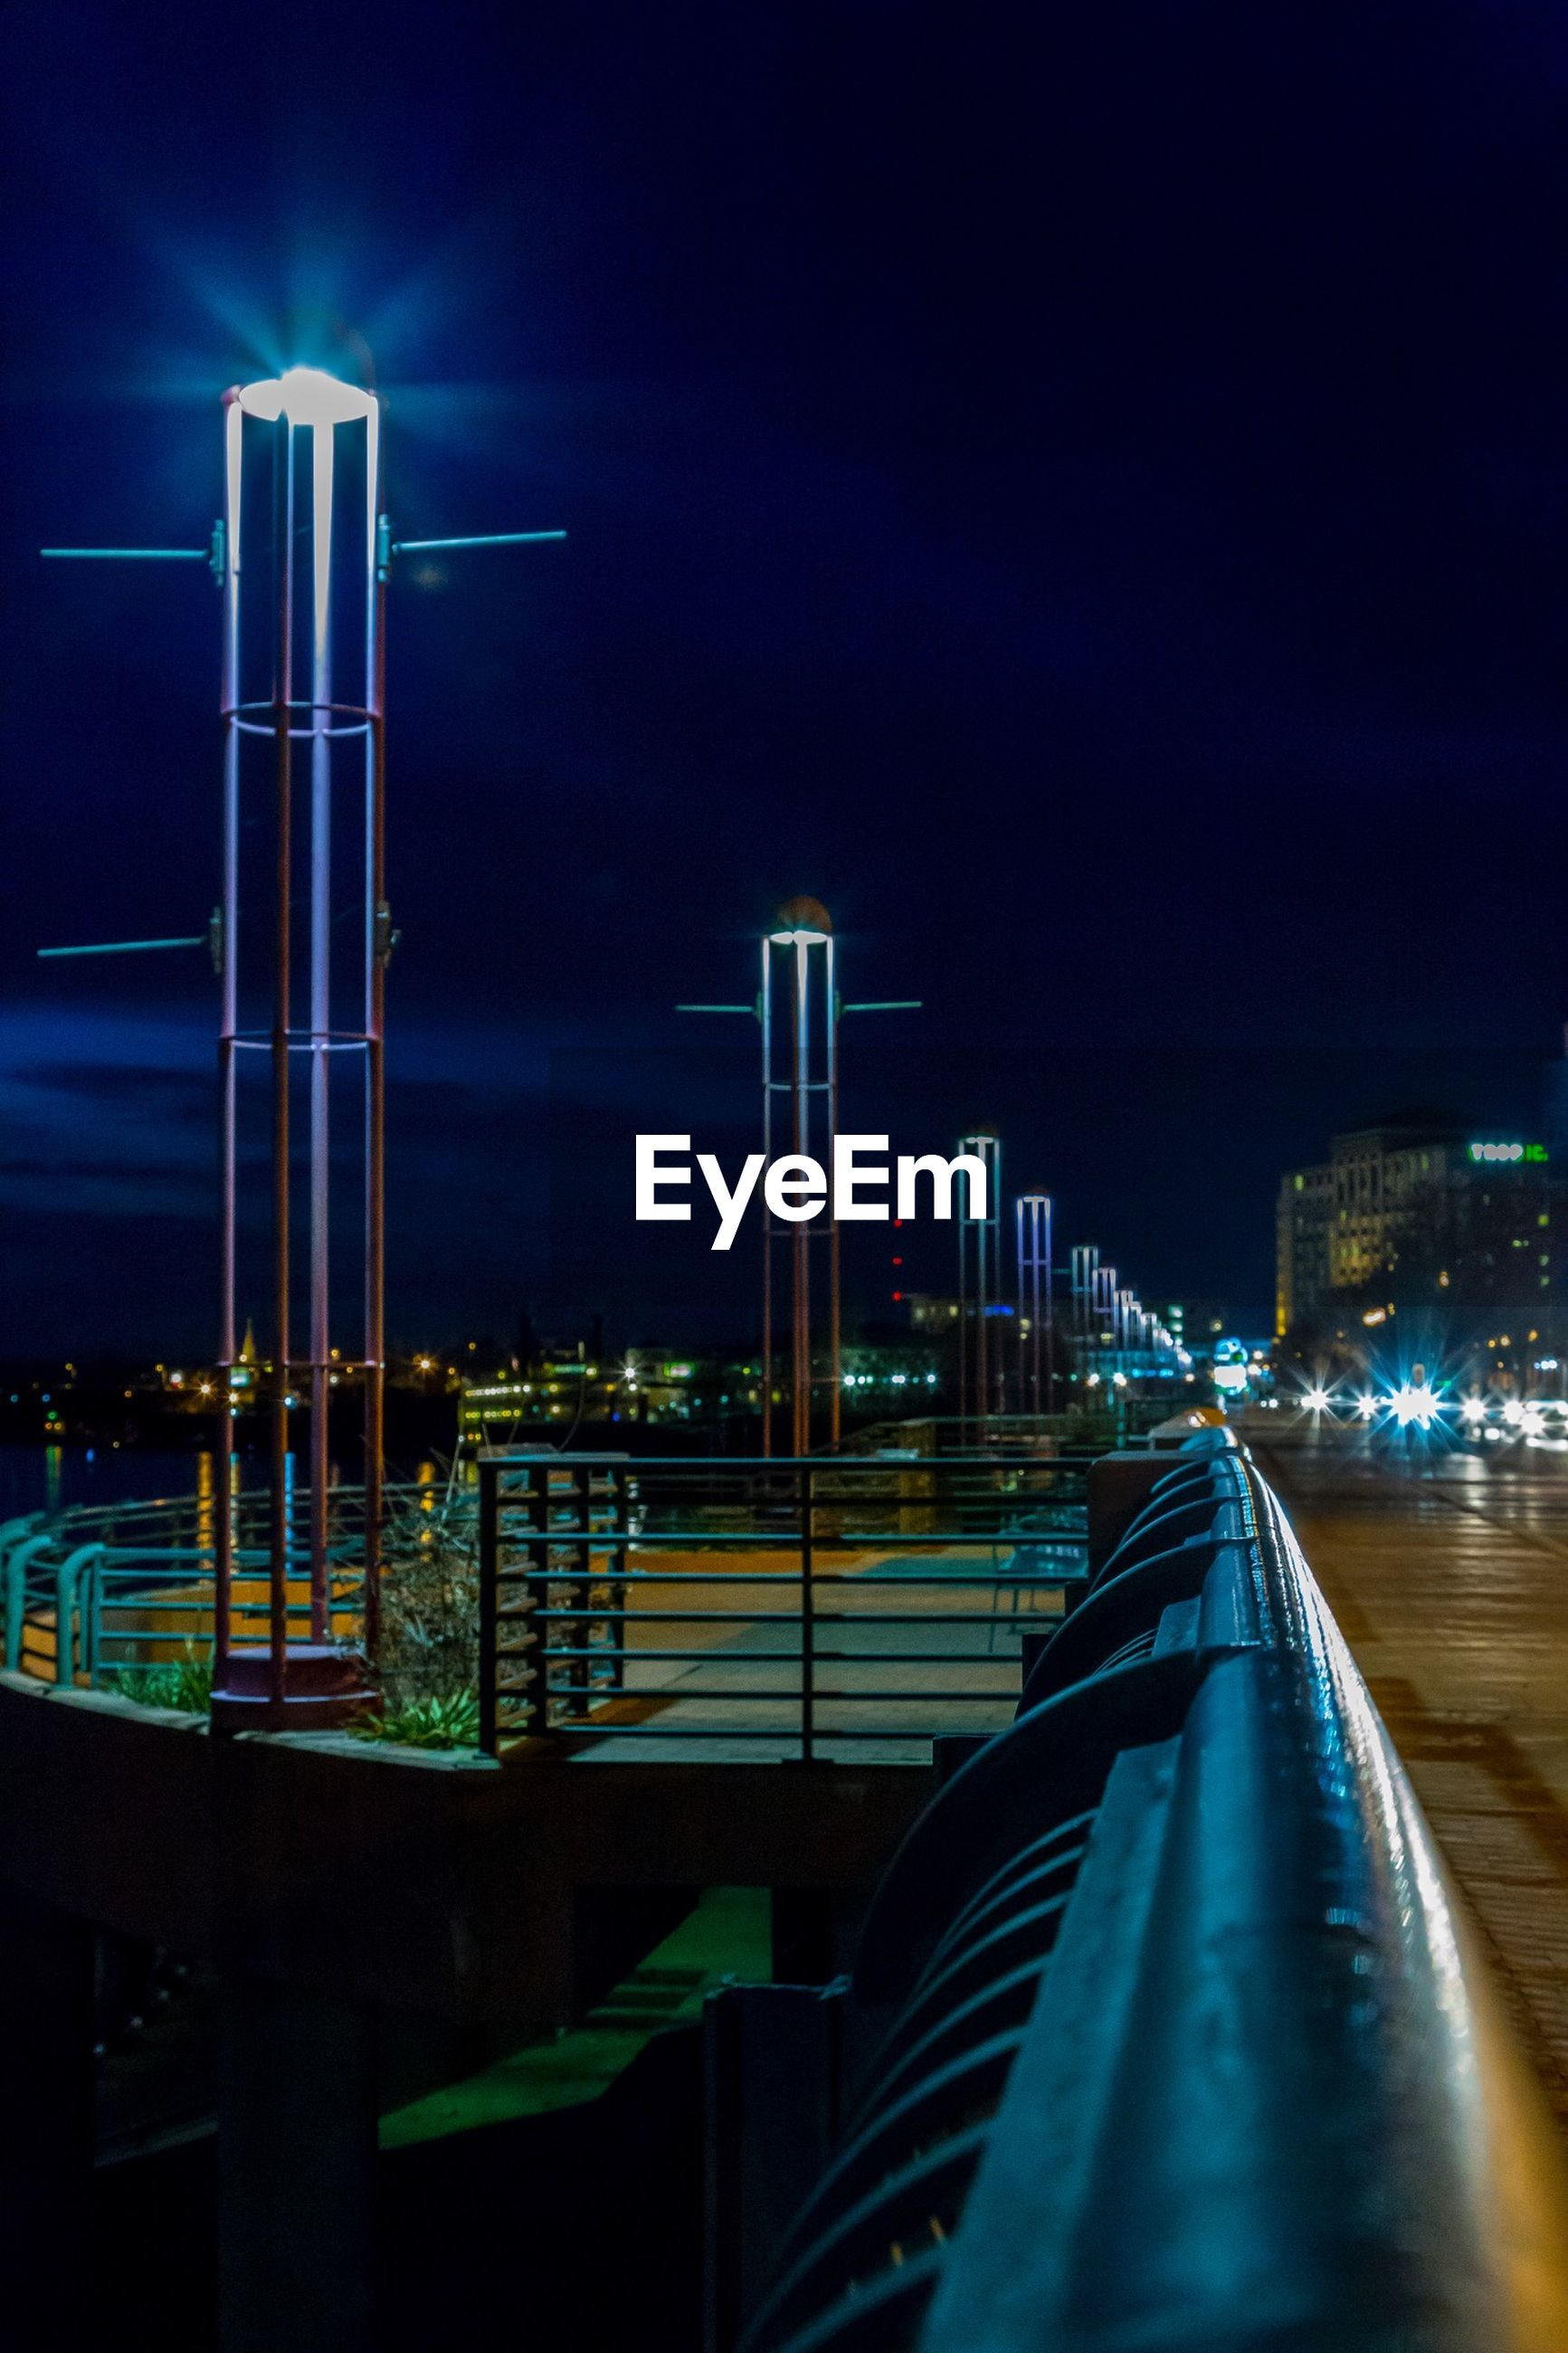 illuminated, night, architecture, built structure, building exterior, city, transportation, sky, bridge - man made structure, blue, modern, street light, lighting equipment, copy space, connection, river, skyscraper, engineering, capital cities, travel destinations